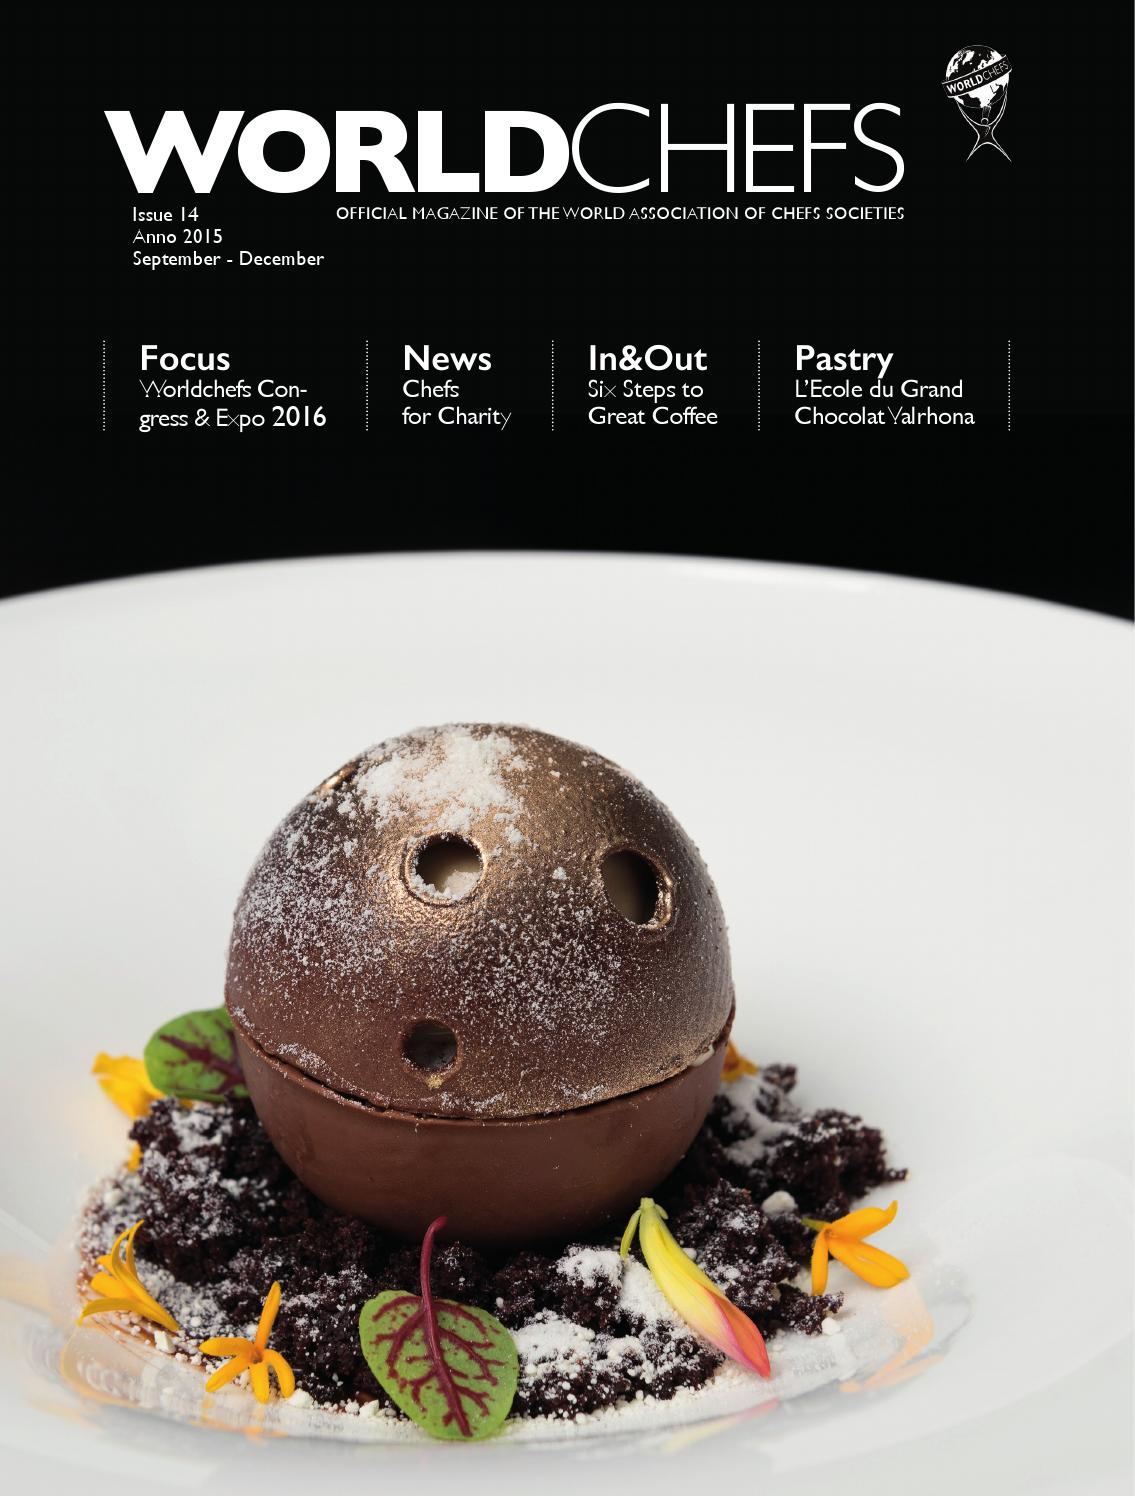 a2410577d5 Worldchefs magazine issue 14 by World Association of Chefs Societies ...